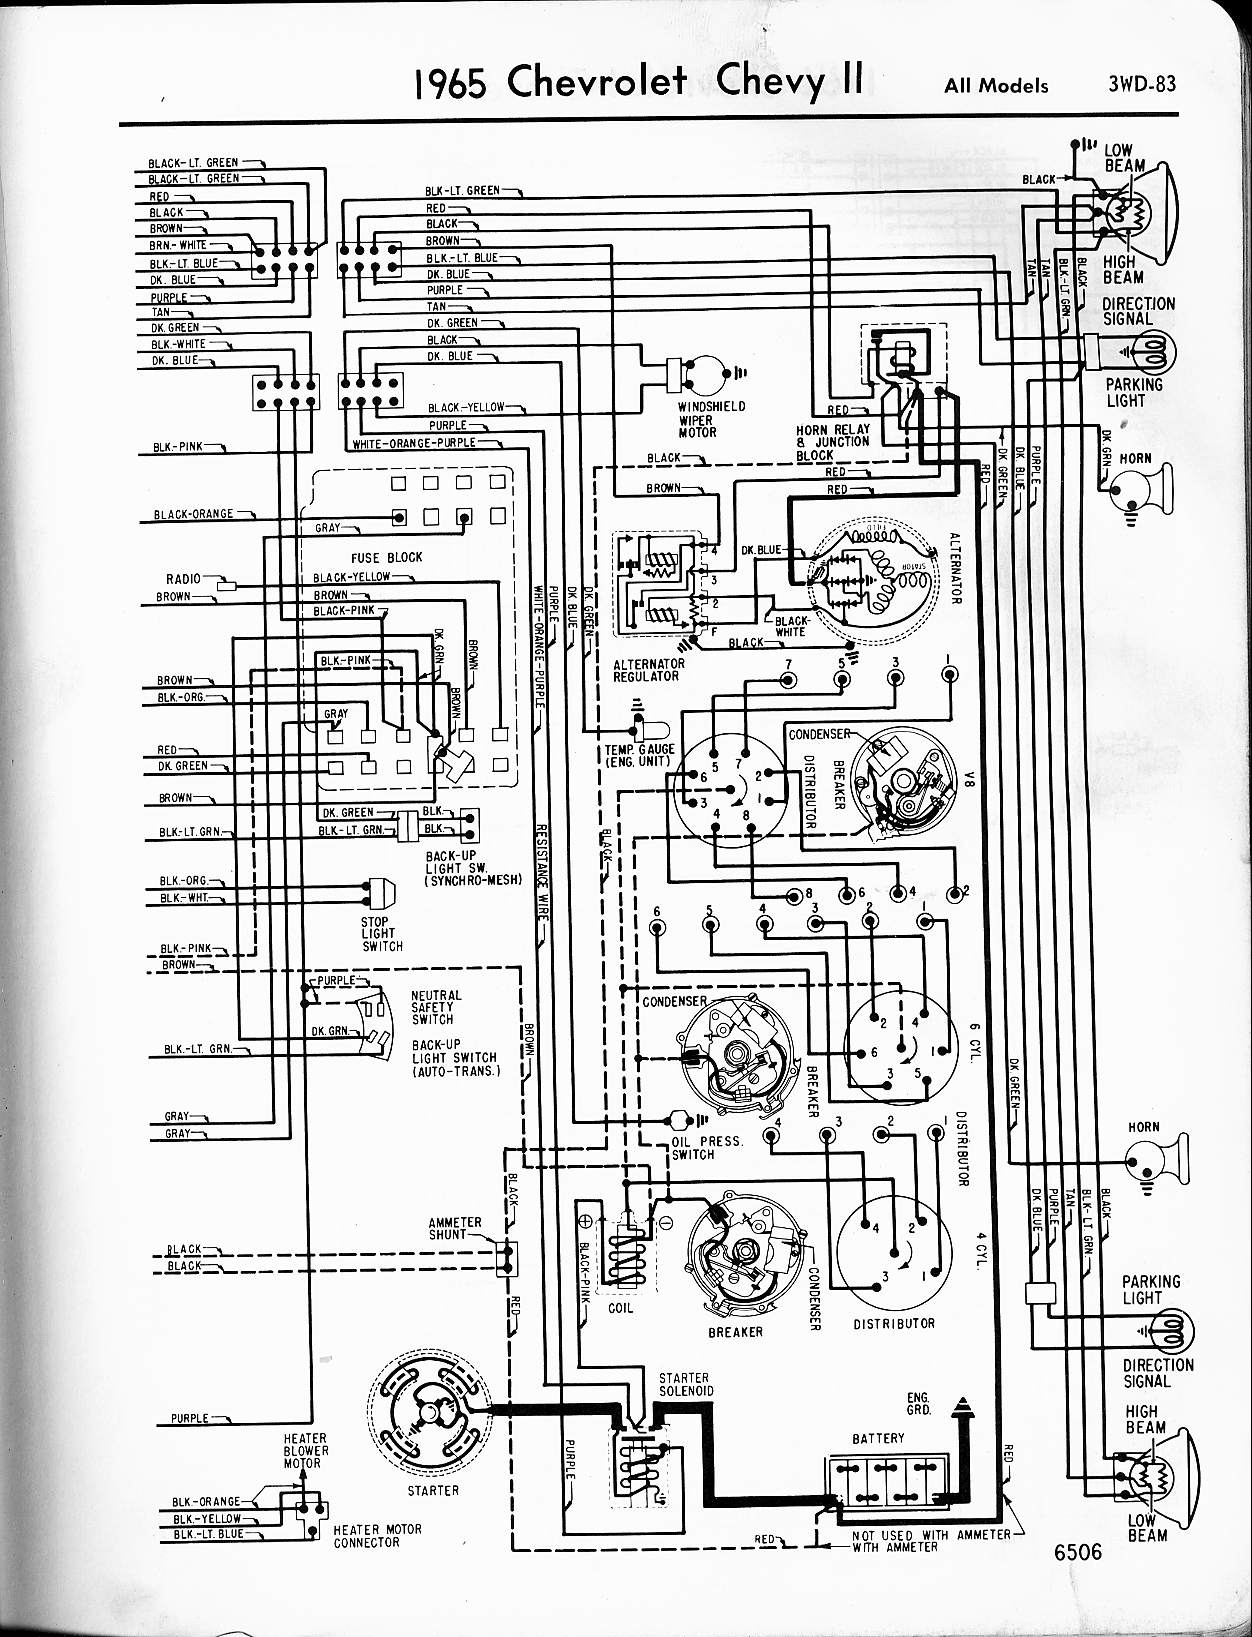 67 Ford Mustang Fuse Box Auto Electrical Wiring Diagram 2003 Gt